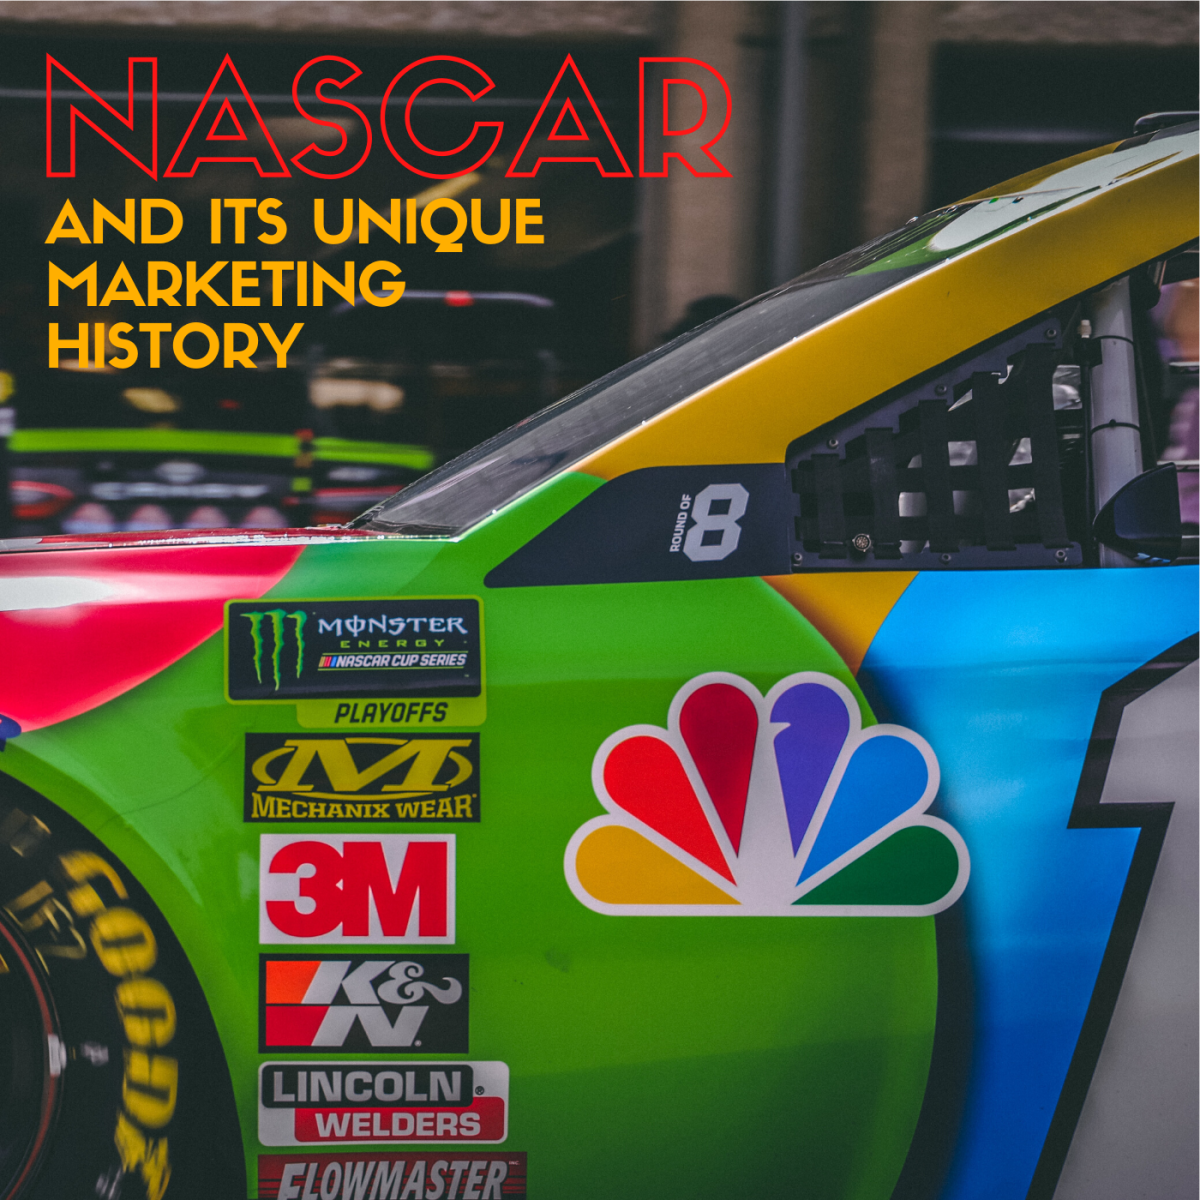 Learn about the history of NASCAR's marketing strategy.